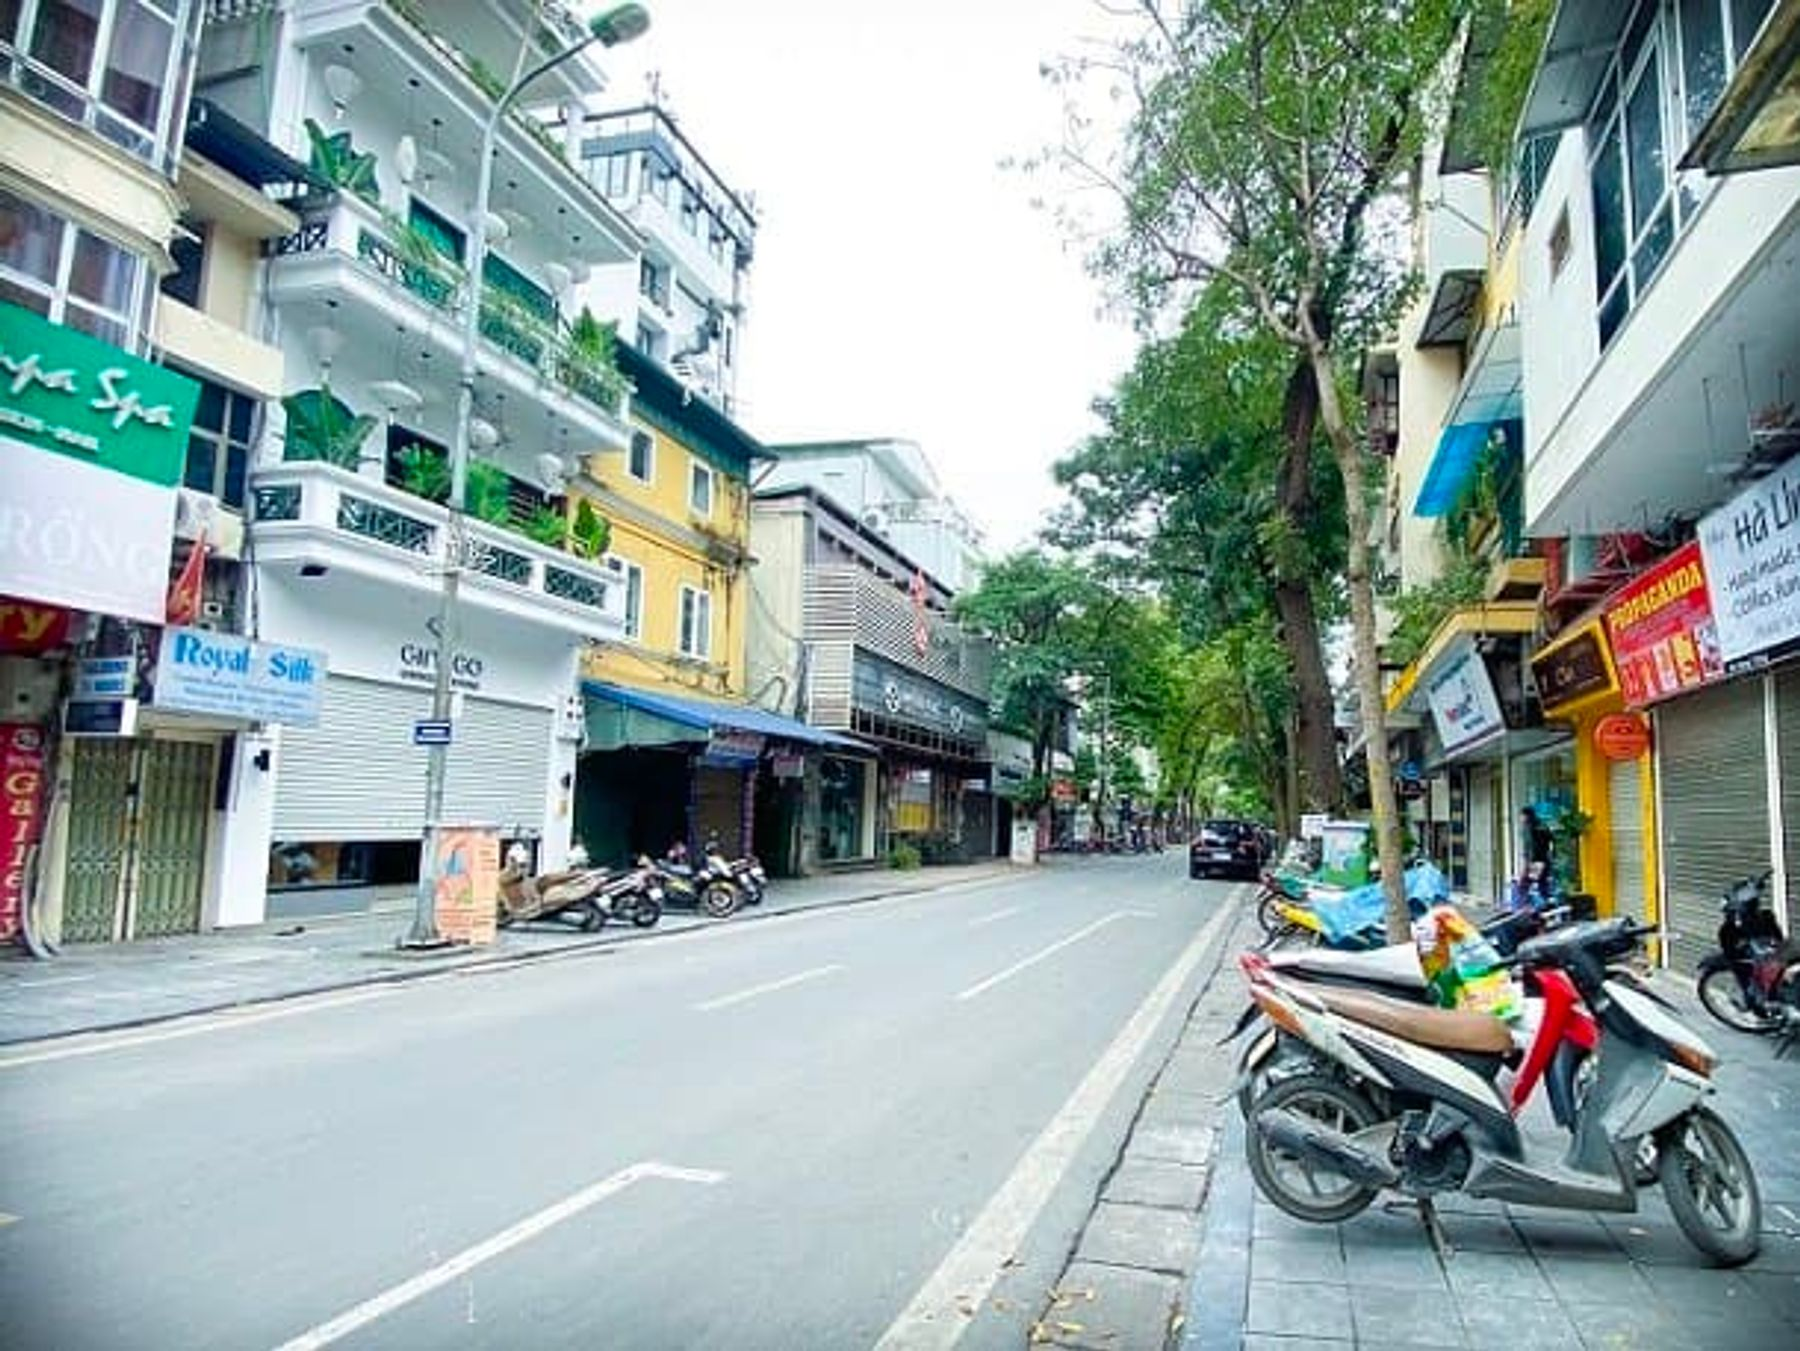 The streets of Hanoi, Vietnam during social isolation (March 2020)